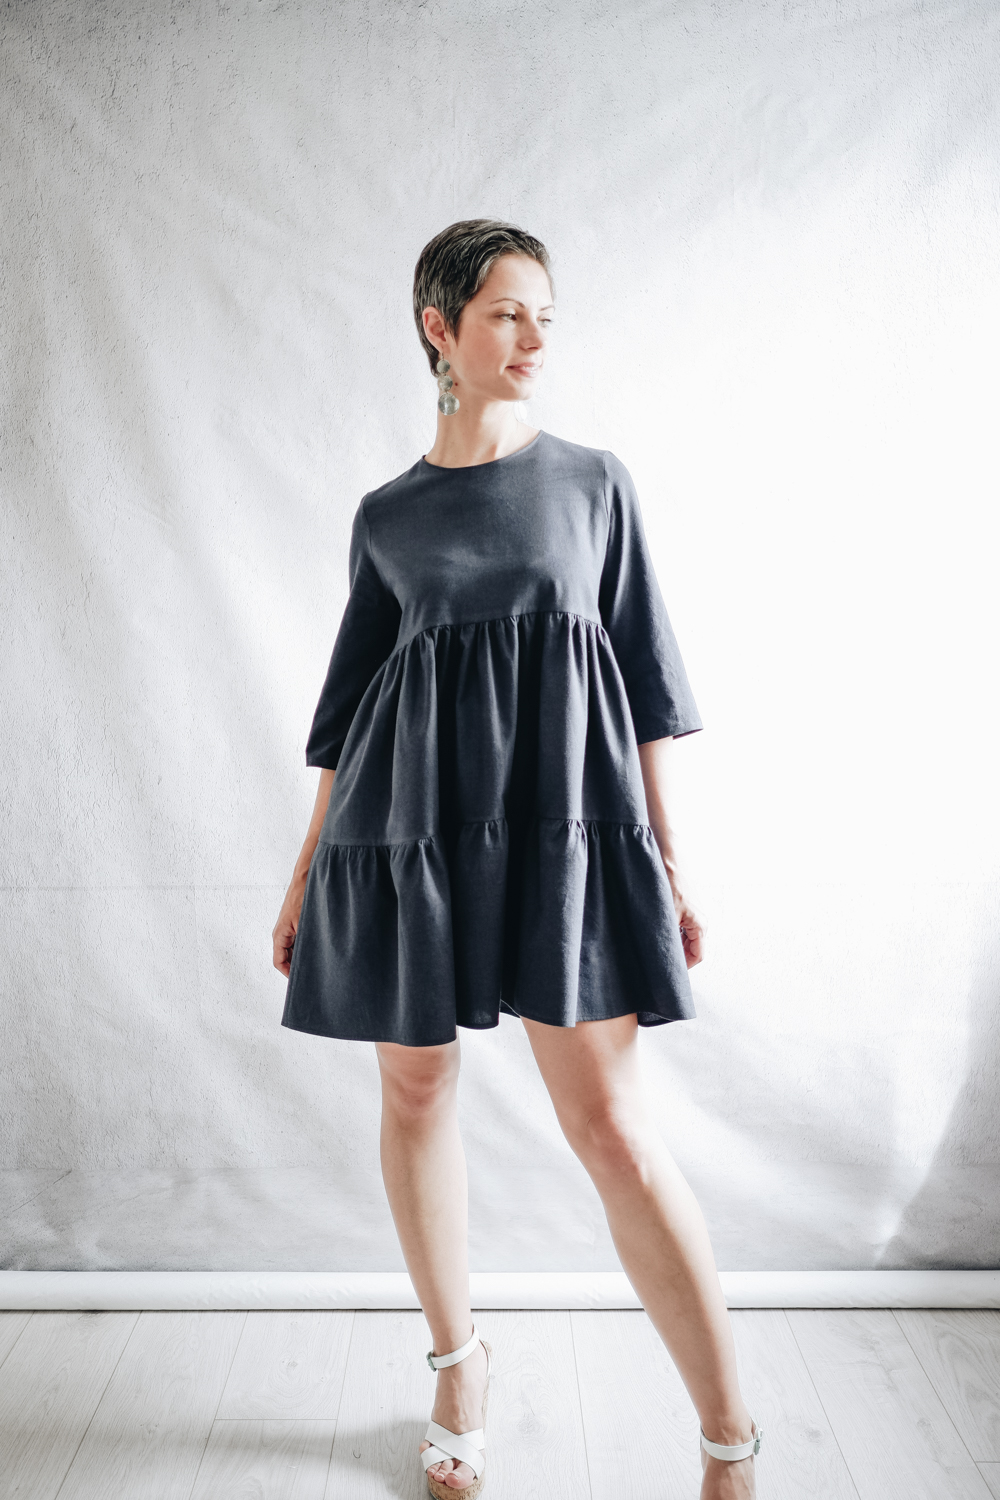 Fibre Mood Mira Dress Review - A-line tiered DIY dress in navy brushed cotton sewn by Sewrendipity